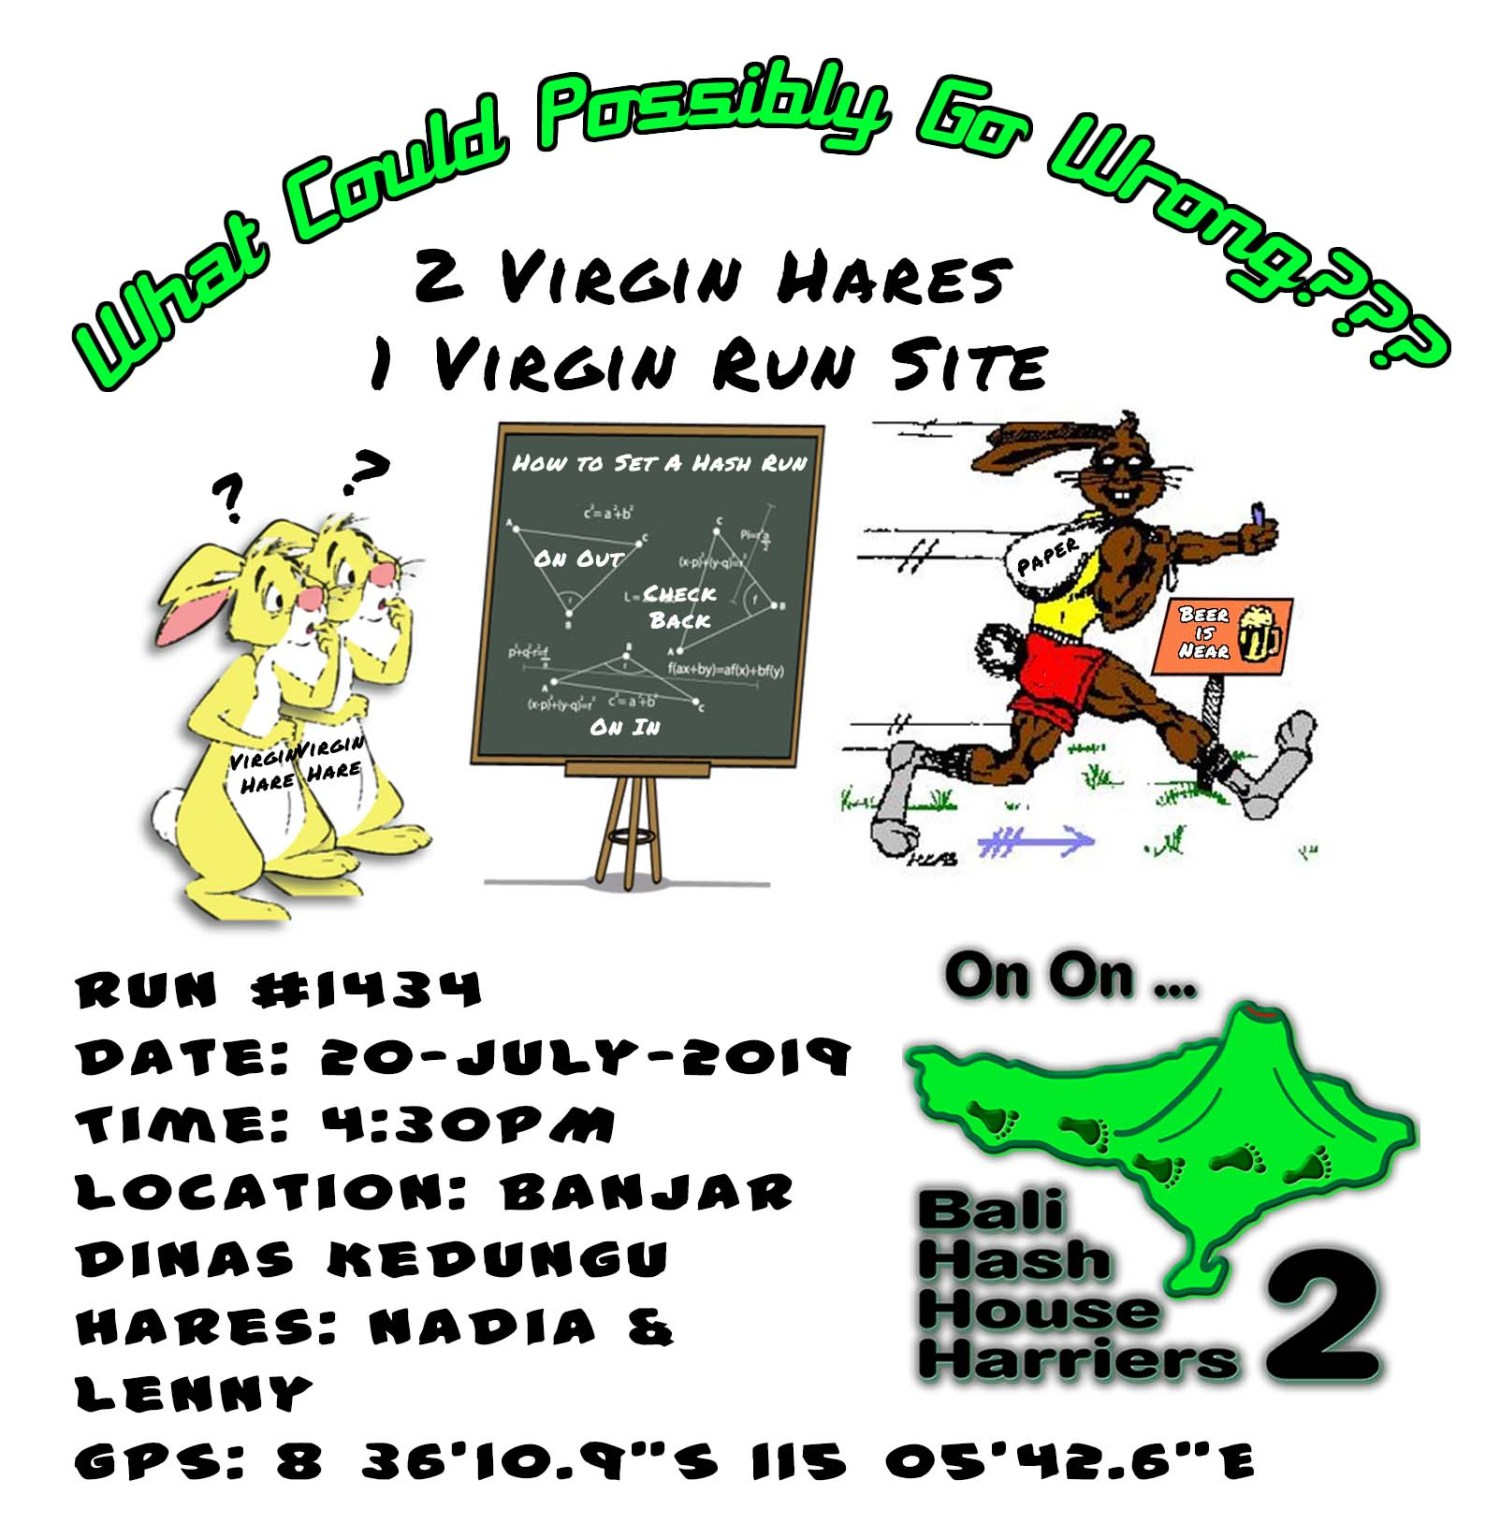 Virgin Hare Virgin Runsite Bali Hash House Harriers 2